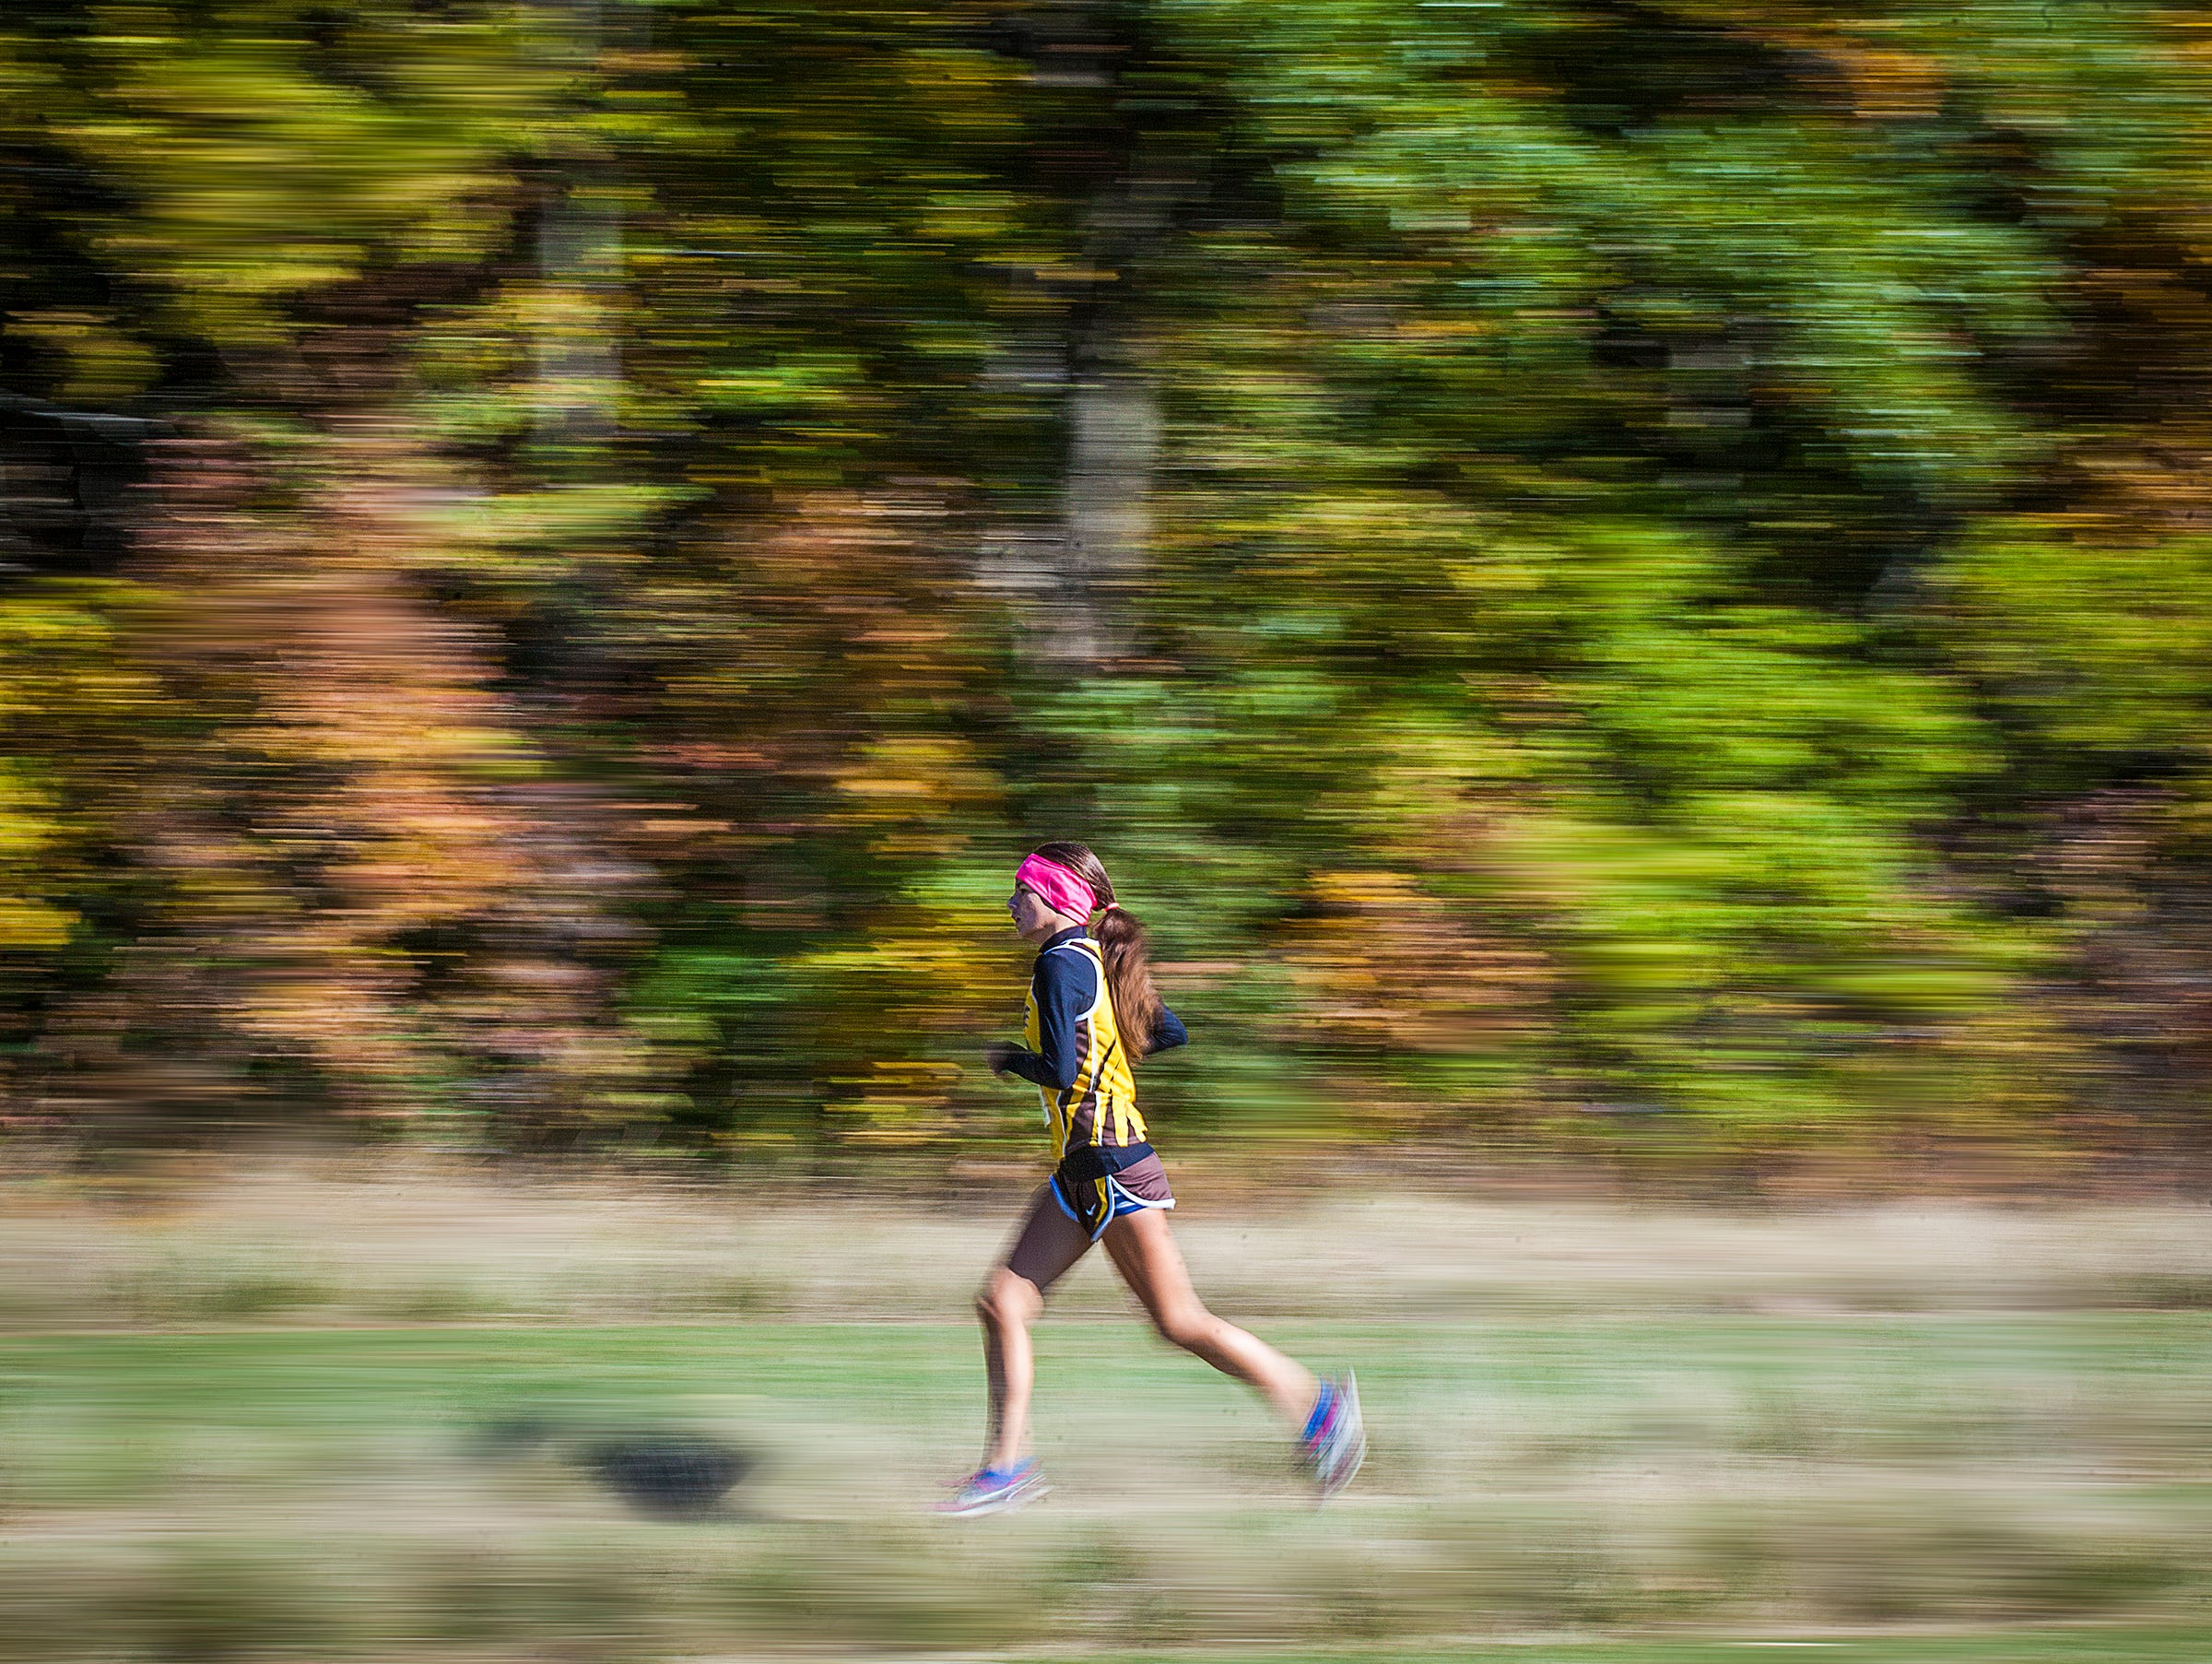 Monroe Central competes in the cross country sectional at the Sportsplex in Muncie on Saturday, Oct. 10, 2015.